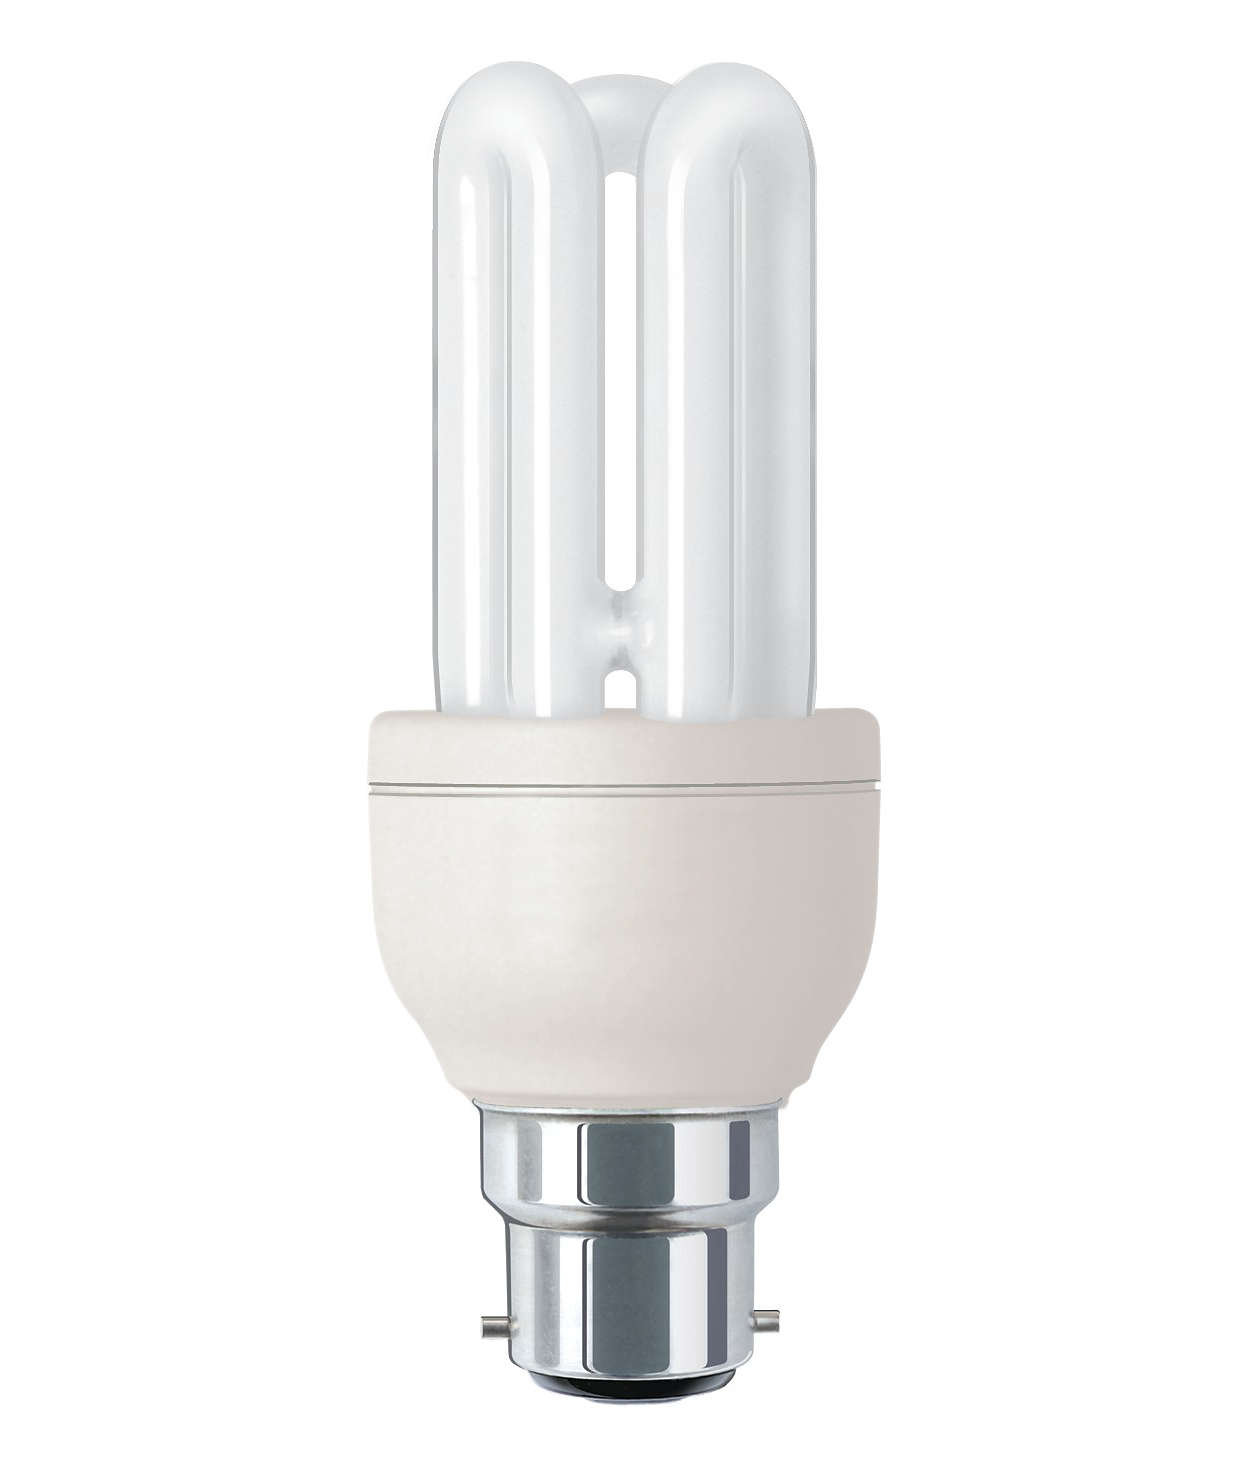 Genie Stick Energy Saving Bulb 871016322420655 Philips